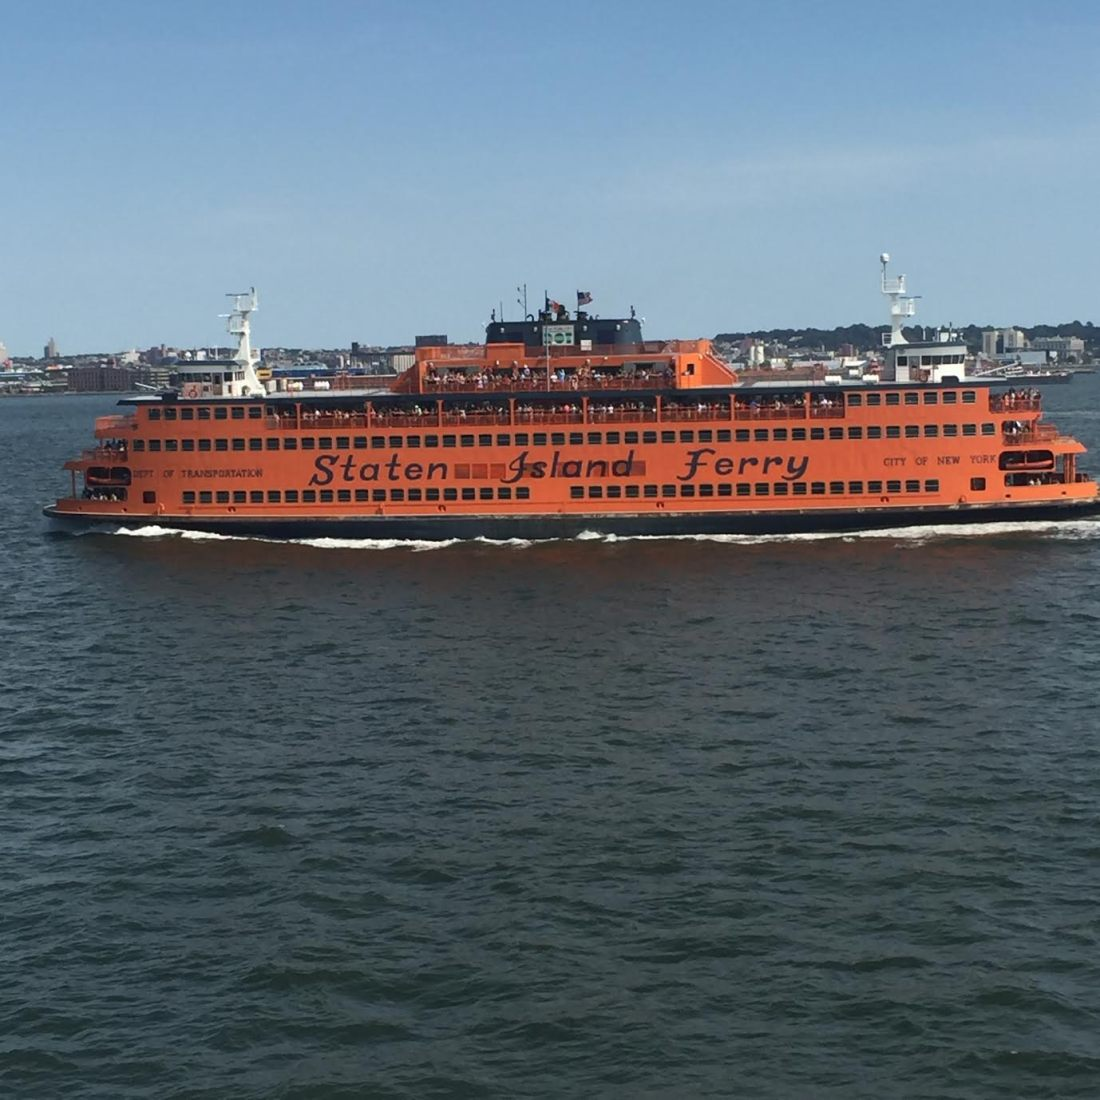 Things to see in New York City - Staten Island Ferry